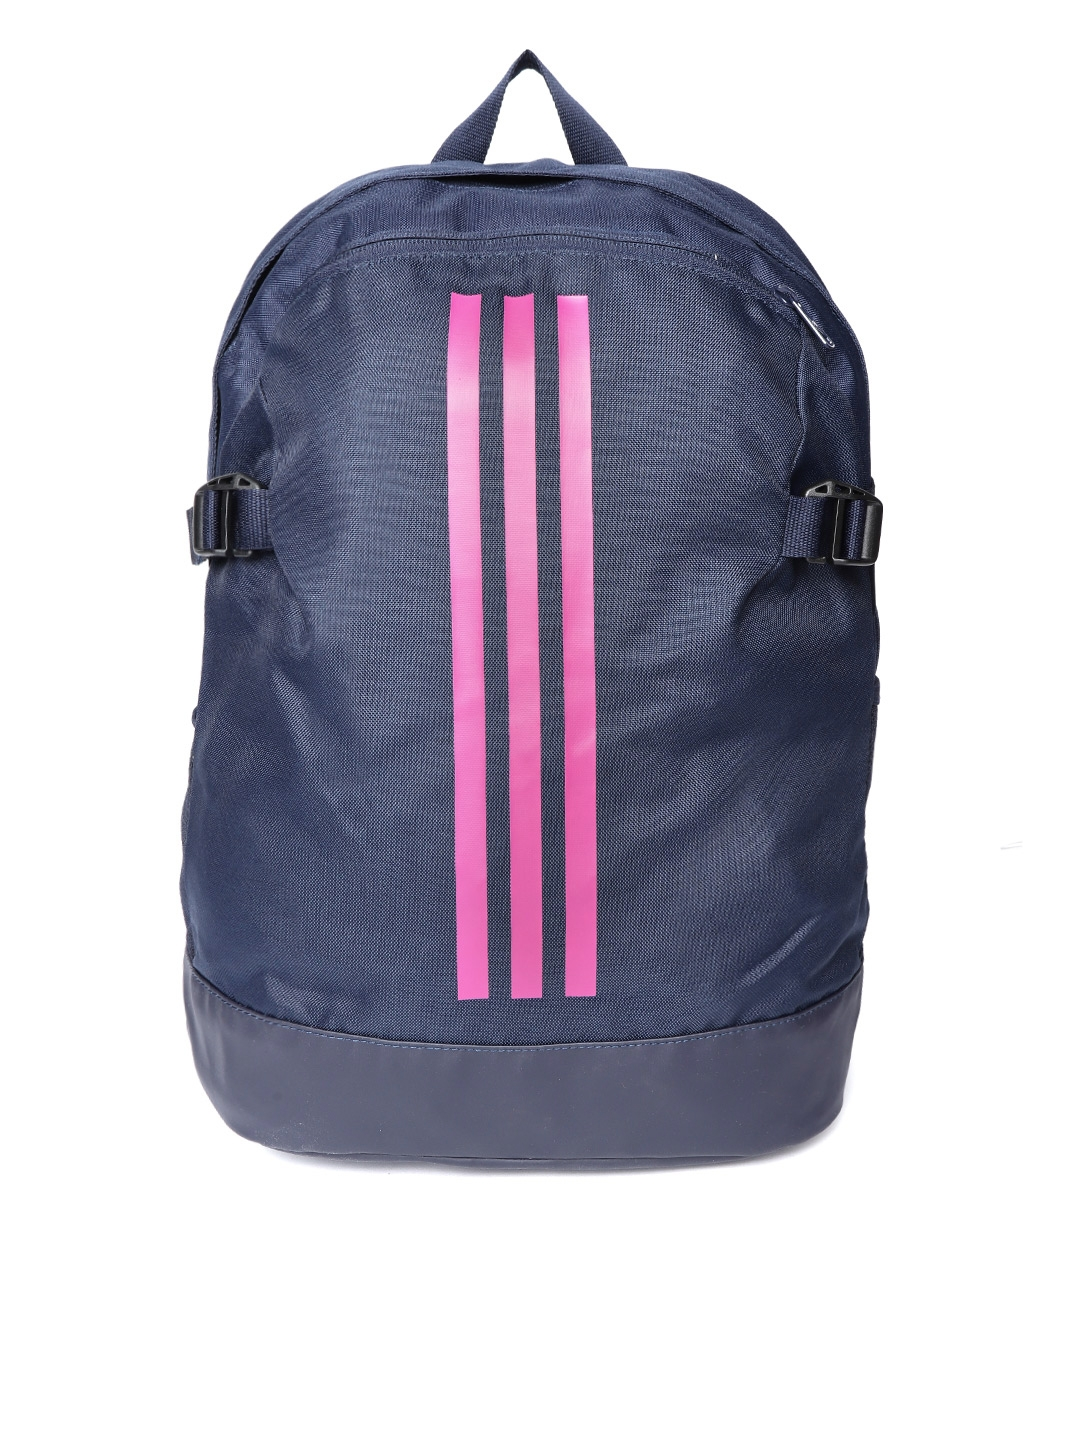 5b62a73a57c3 Buy ADIDAS Unisex Navy Blue Power IV M Striped Backpack - Backpacks ...